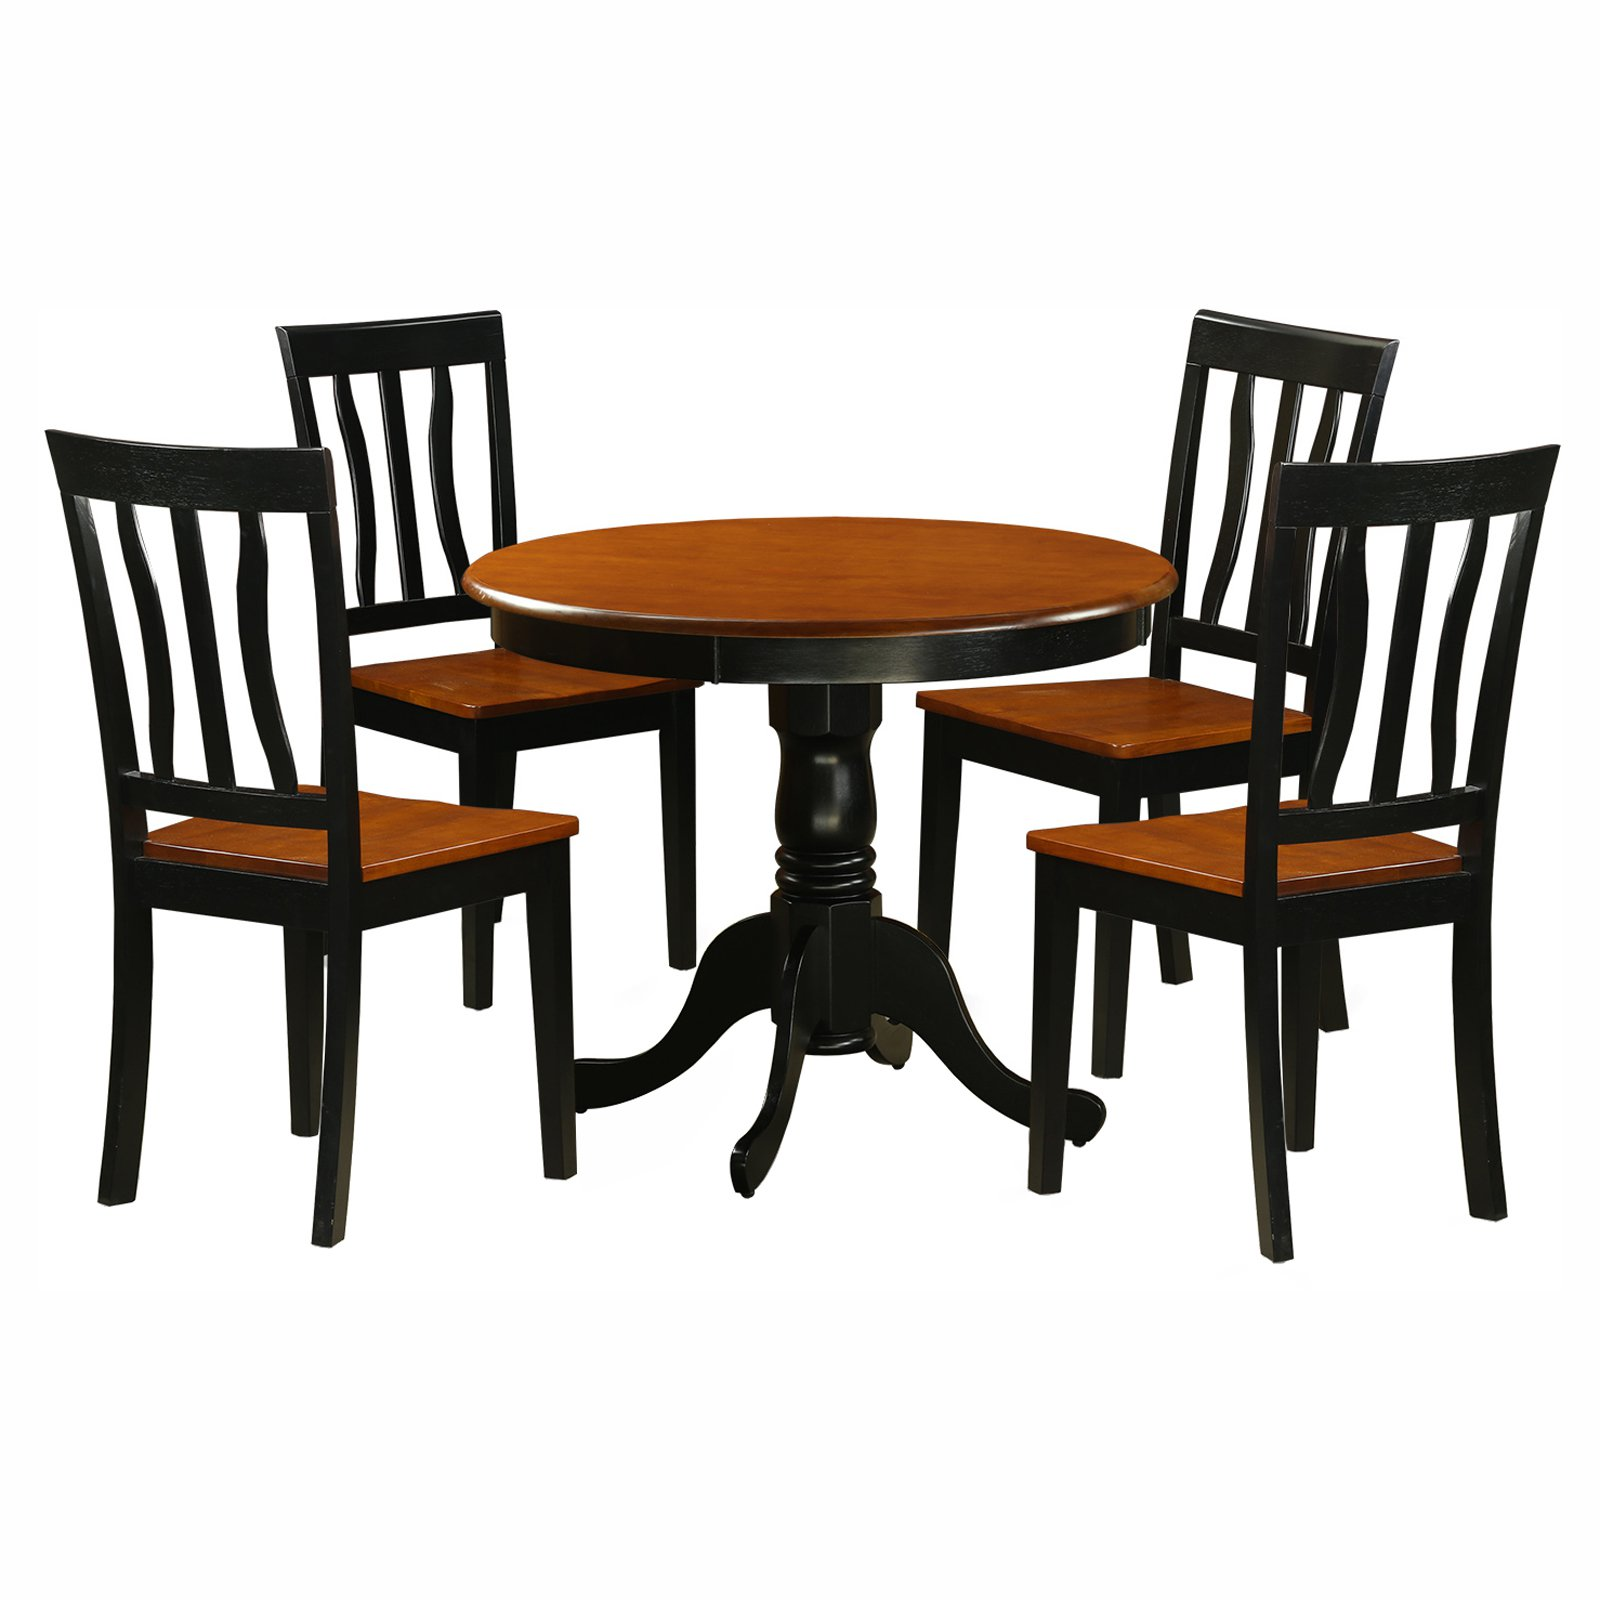 East West Furniture Antique 5 Piece Pedestal Round Dining Table Set With  Wooden Seat